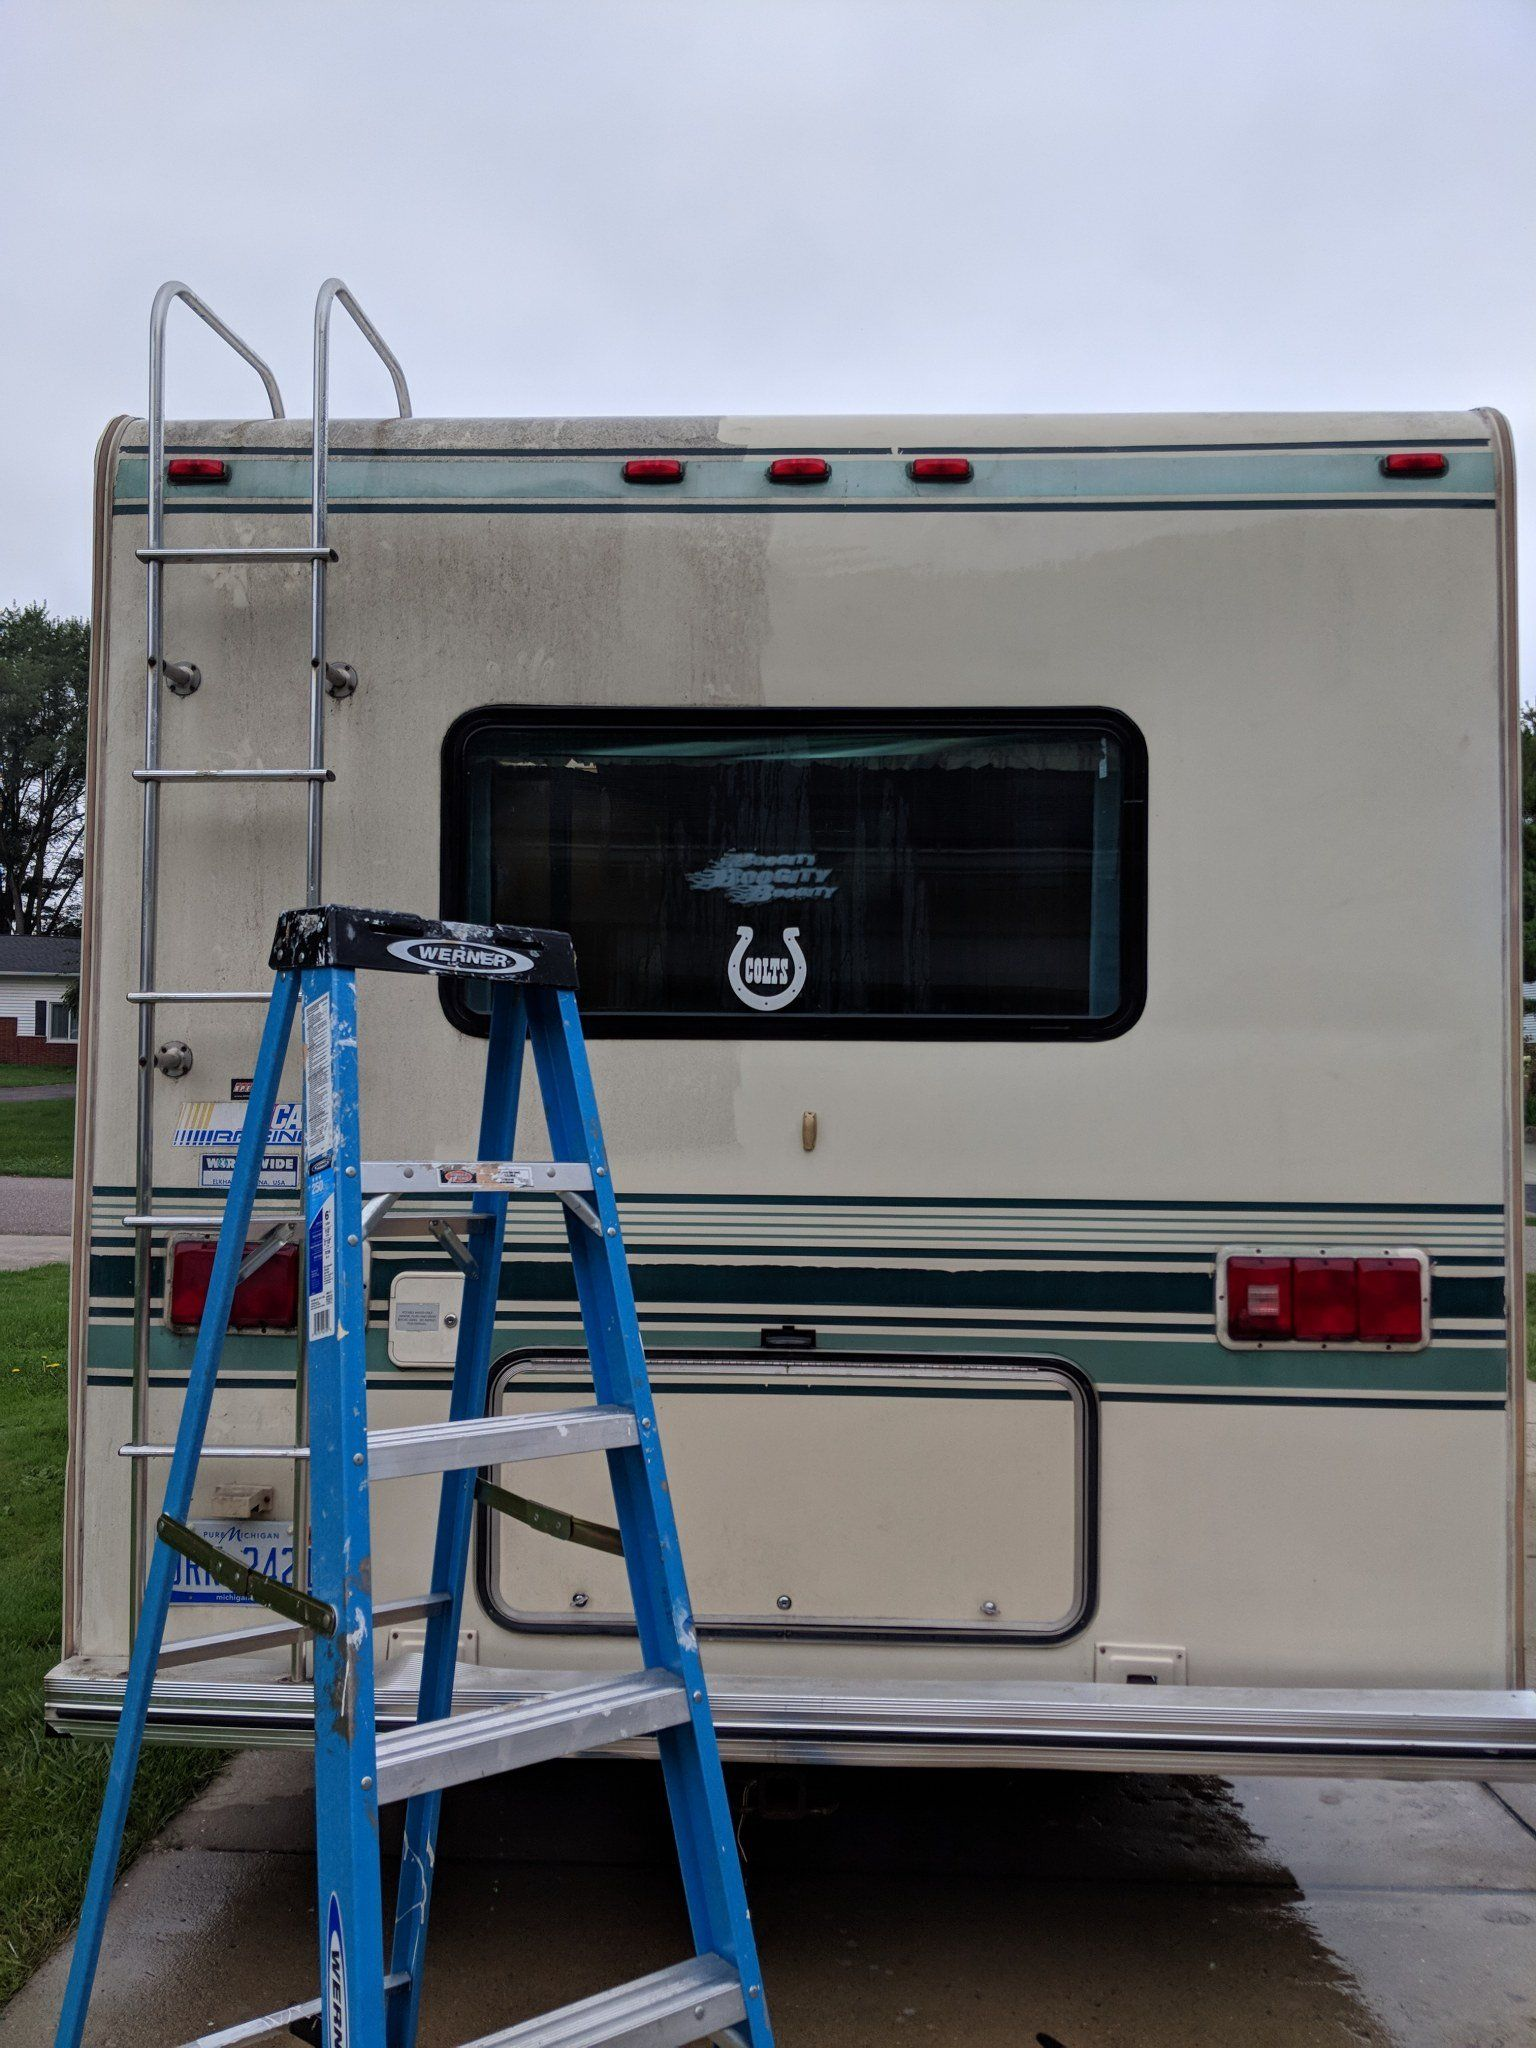 How to Paint the Exterior of a Camping Trailer or RV is part of Camper trailer remodel, Camping trailer, Paint rv, Rv exterior, Camper makeover, Camper trailers - I've painted the exterior of multiple campers  from a vintage trailer to a 90's RV  I'll share what technique I use and how well it has held up!